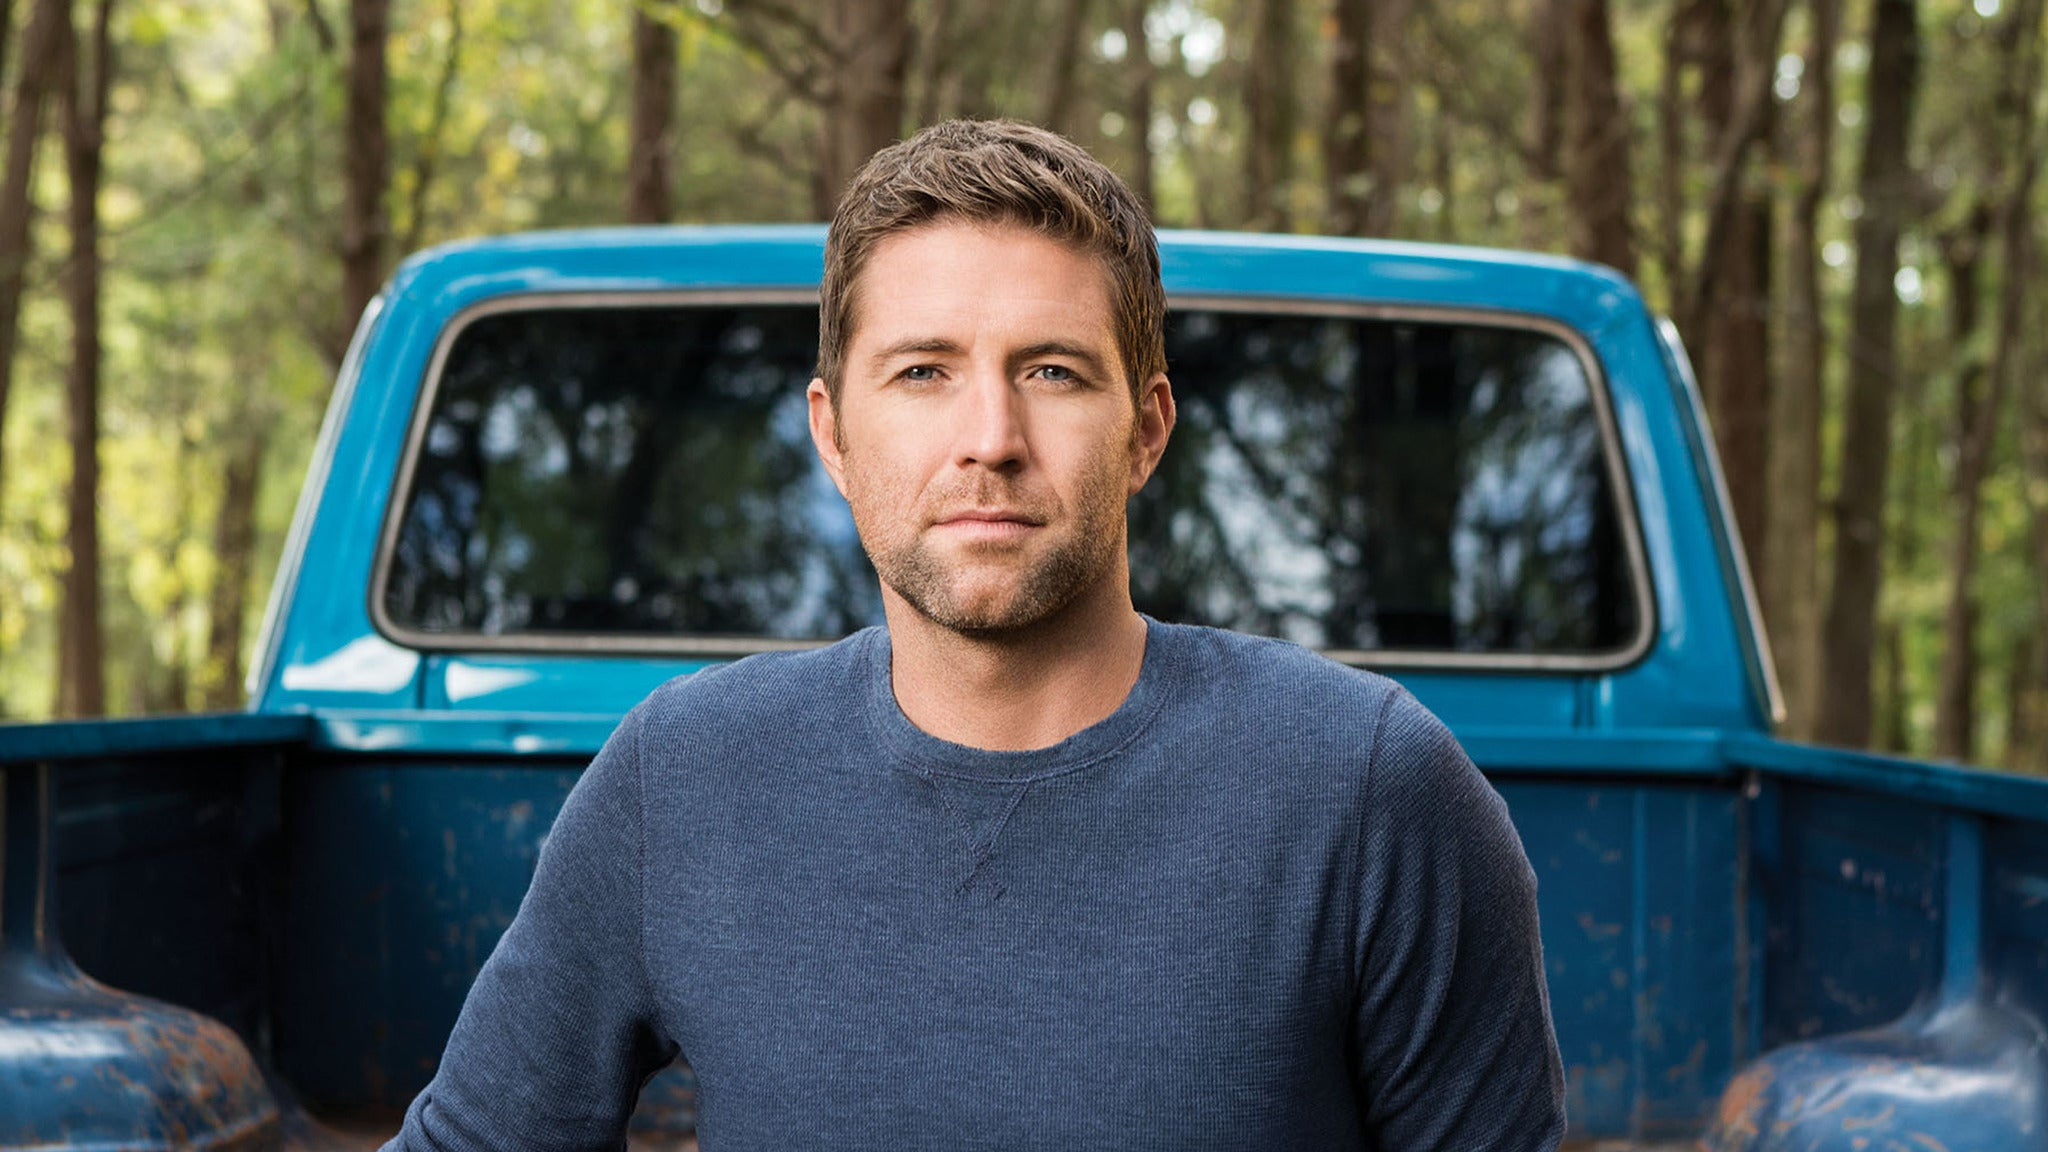 Josh Turner at Ridgefield Playhouse - Ridgefield, CT 06877